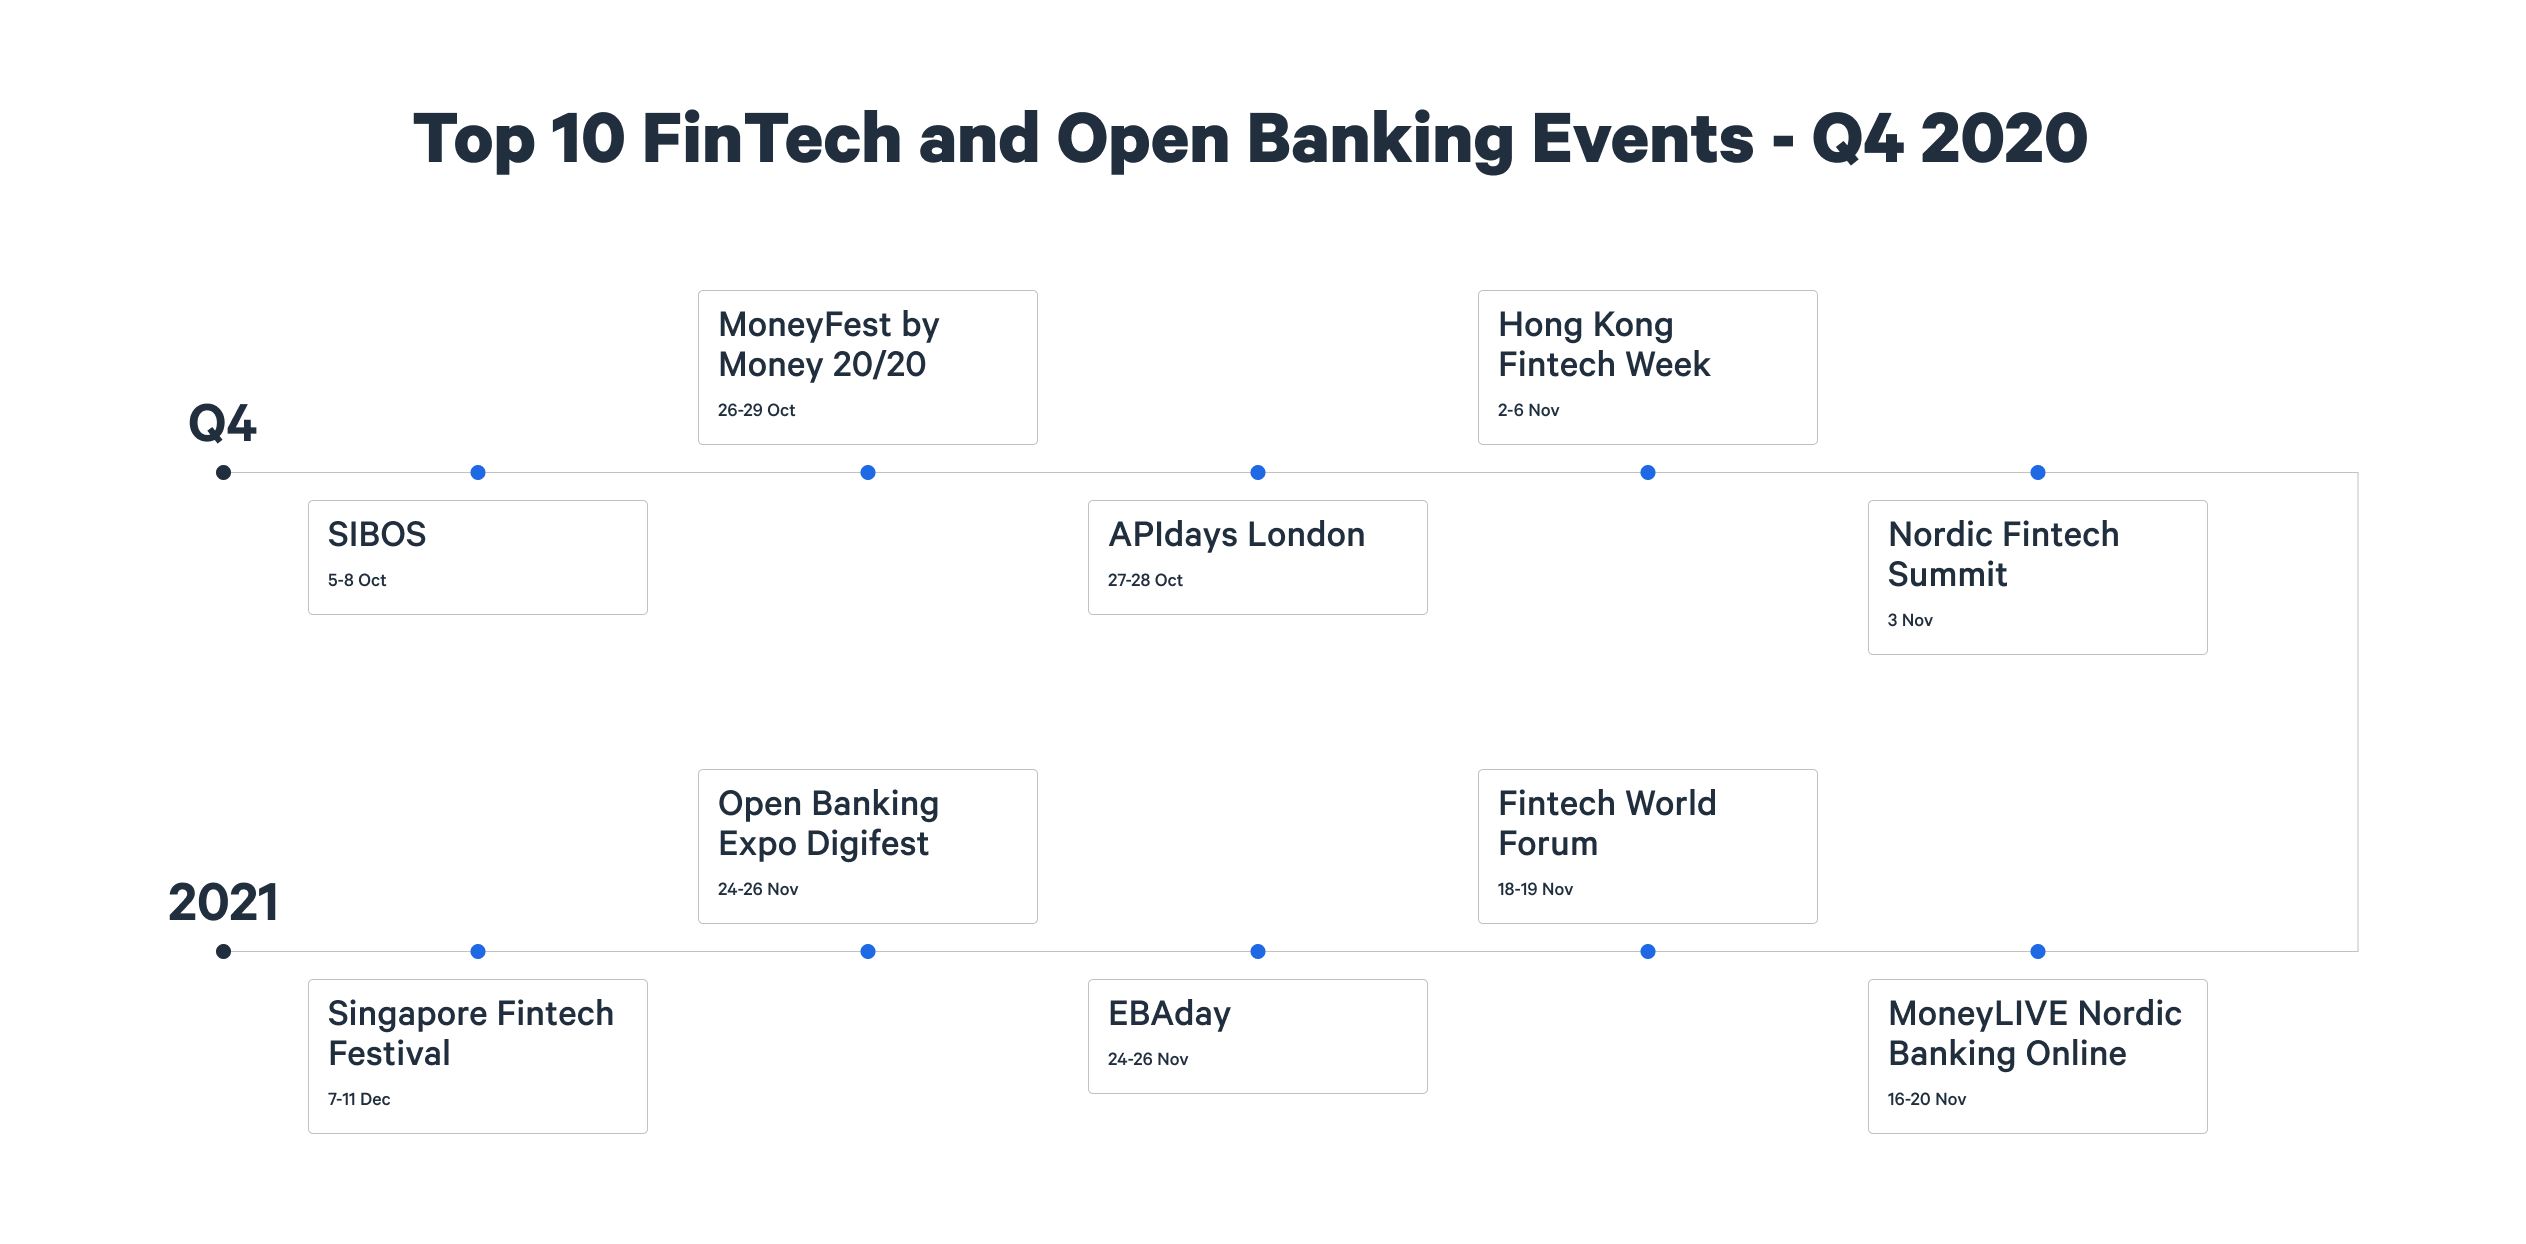 Top 10 Open Banking and FinTech Events - Q4 2020